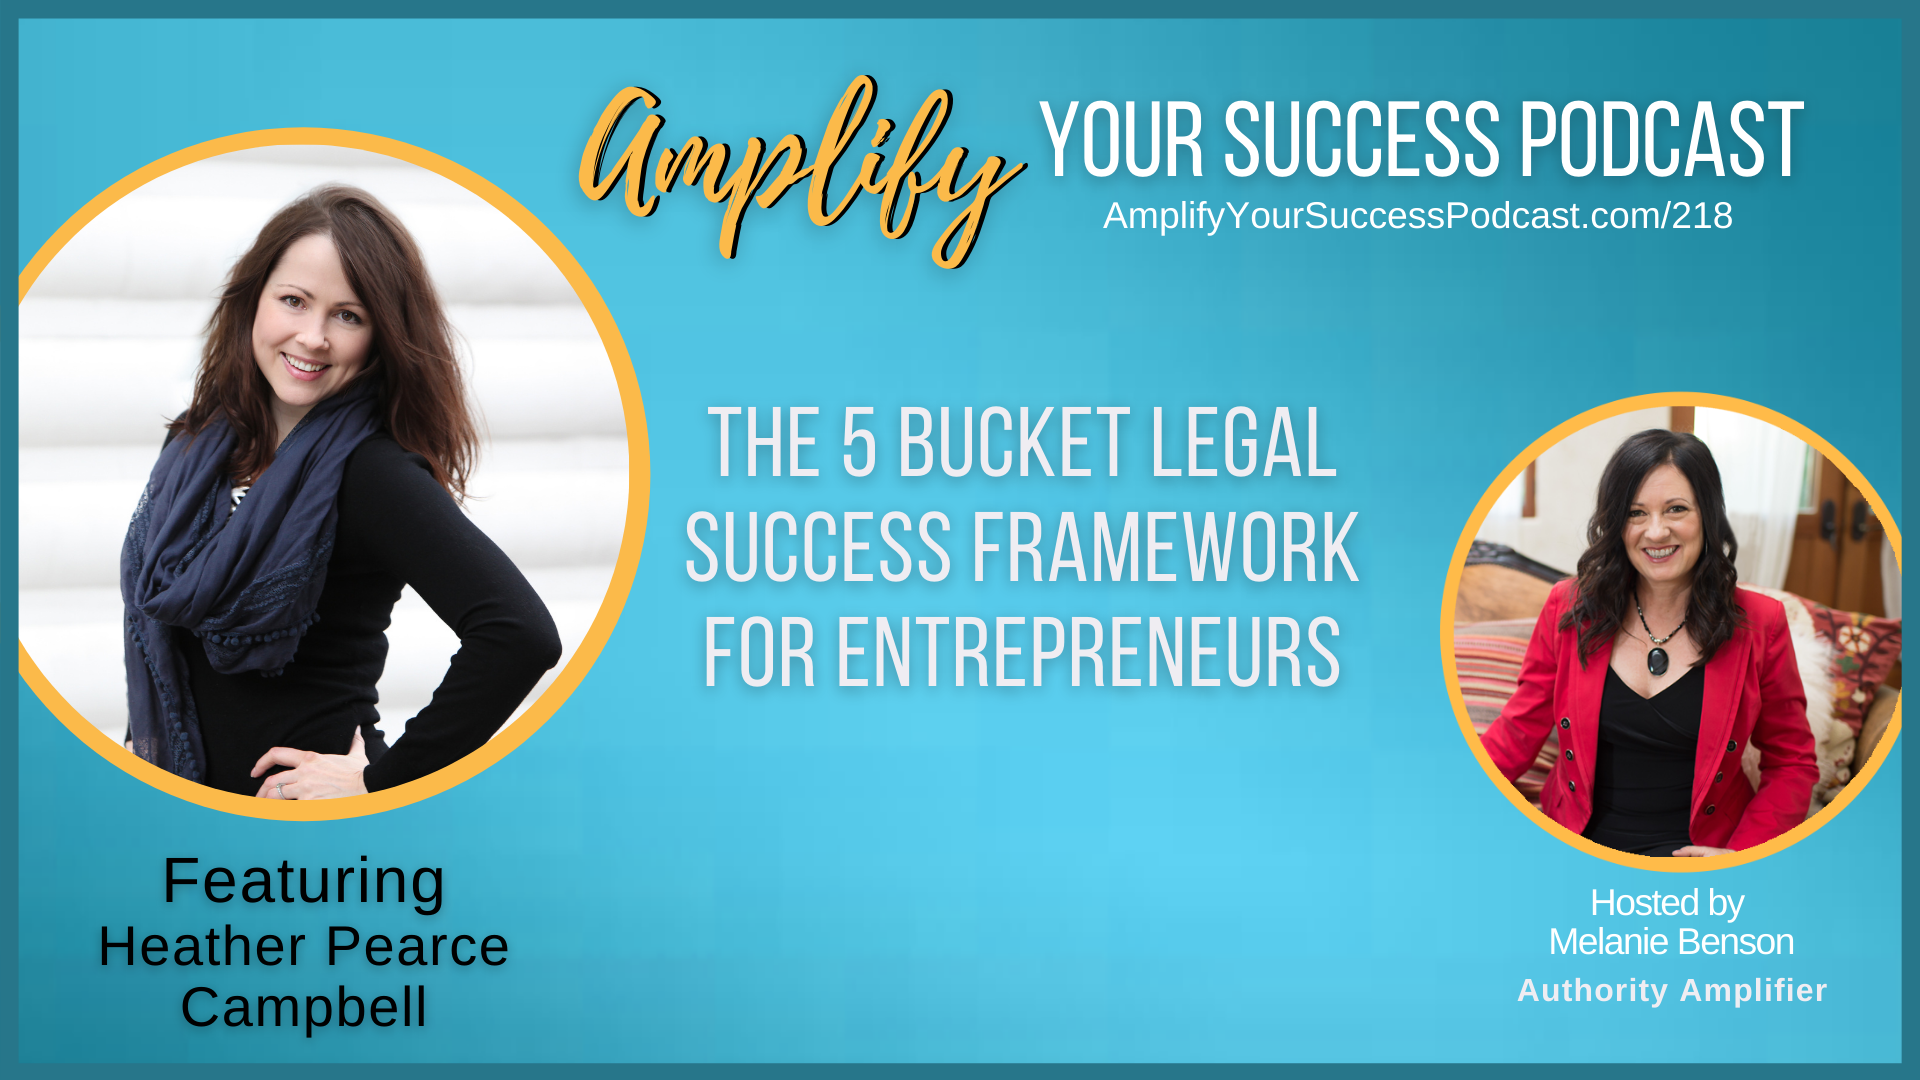 Essential Legal Support for Entrepreneurs